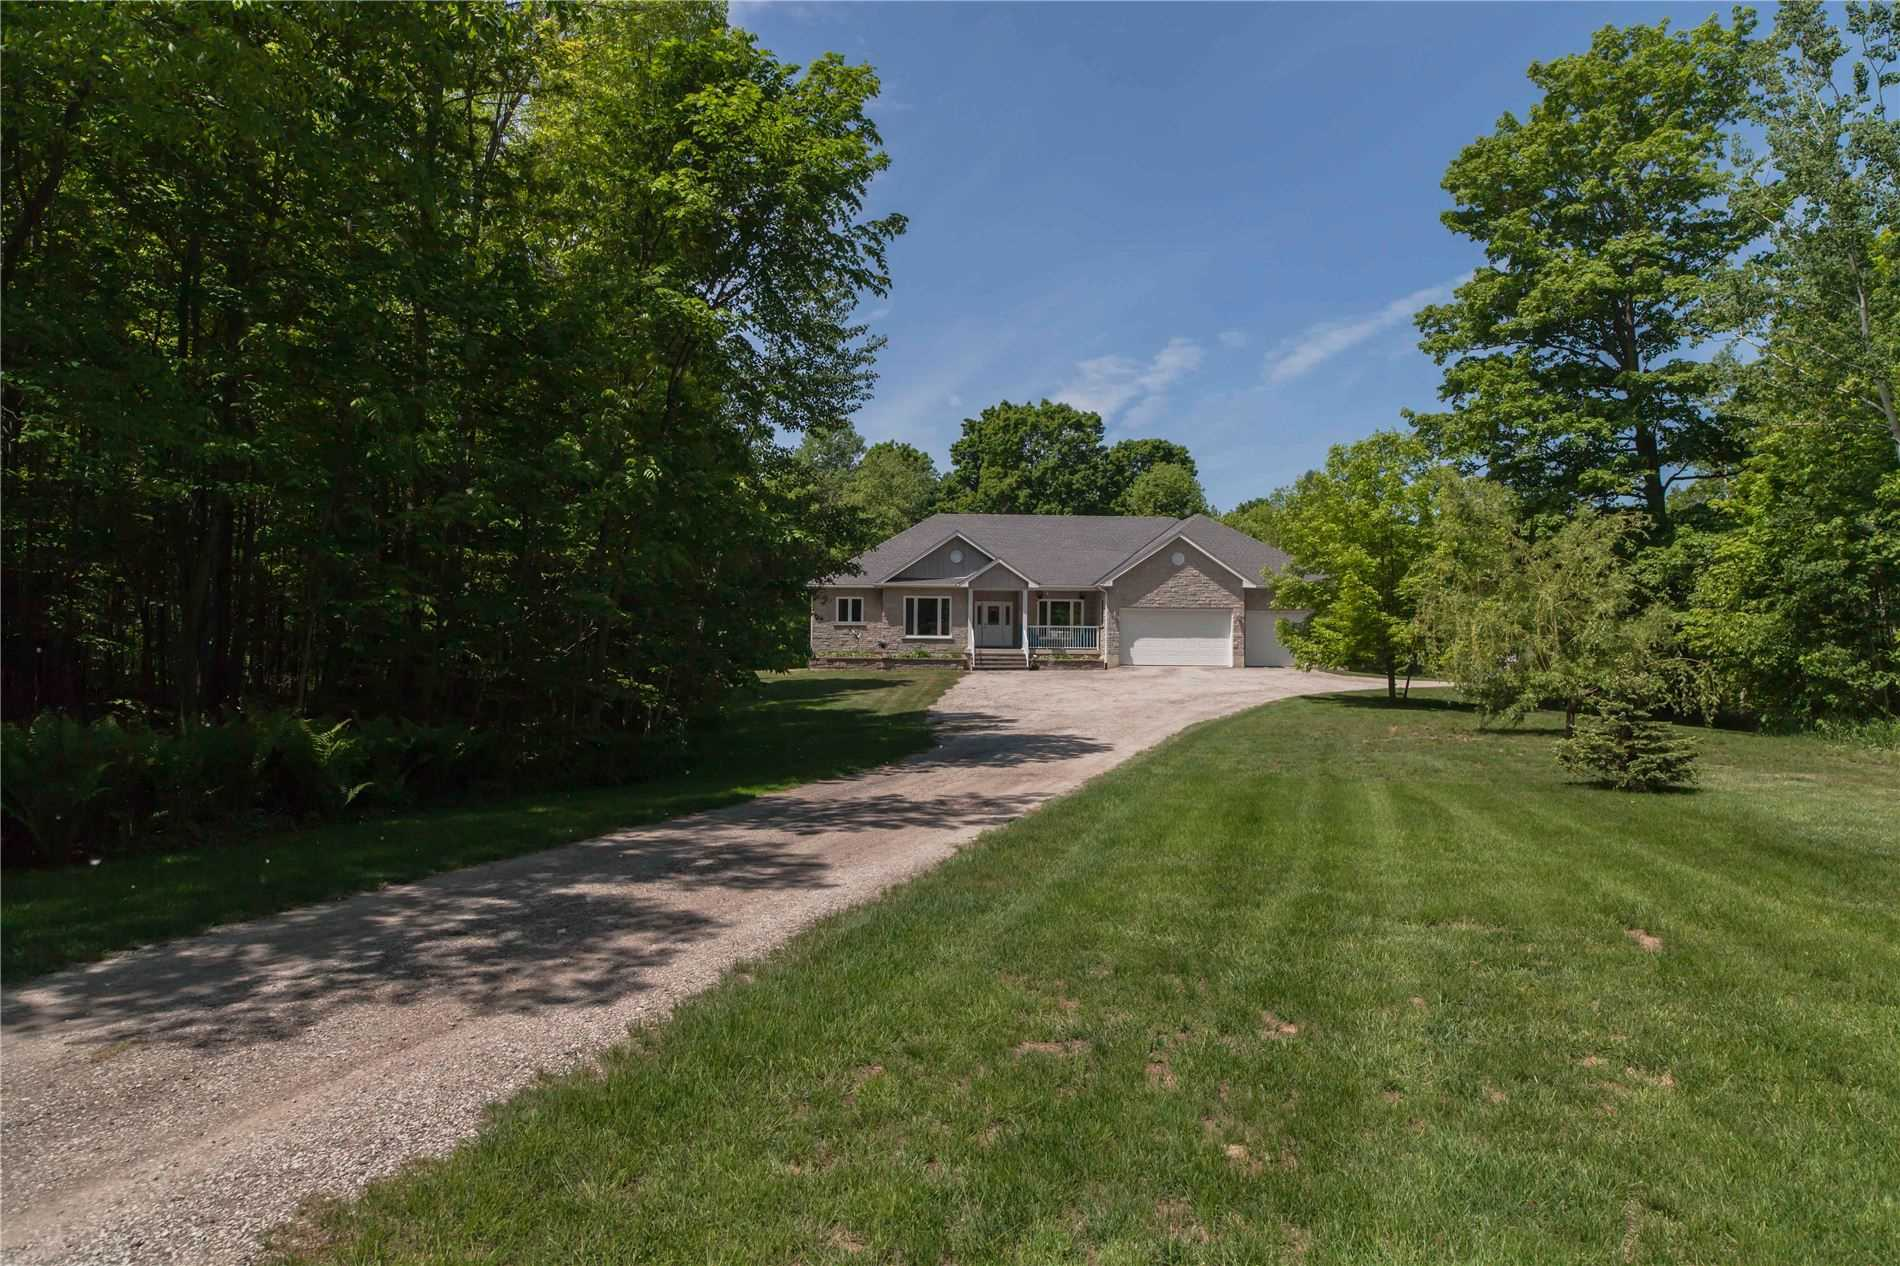 Executive Country Estate On 43.82 Gorgeous Acres Bordering Spring Creek, 5 Mins To Sauble Beach. Custom Built 5400 Sq Ft Home & Triple Garage Plus A 3200 Sq Ft Custom Shop/Garage. Quality Workmanship Shows! 4 Bed, 4 Bath, Gleaming Hrdwd Flrs. All Rms Generous Size! Huge Open Concept Living, Kitchen W/ Island & Pantry, Main Flr Laundry, Master W/ Ensuite & W/I Closet + Walkout To Deck. Games/Rec/ Workout Rm, Cold Storage, Guest Bedroom / Bath + Workspace